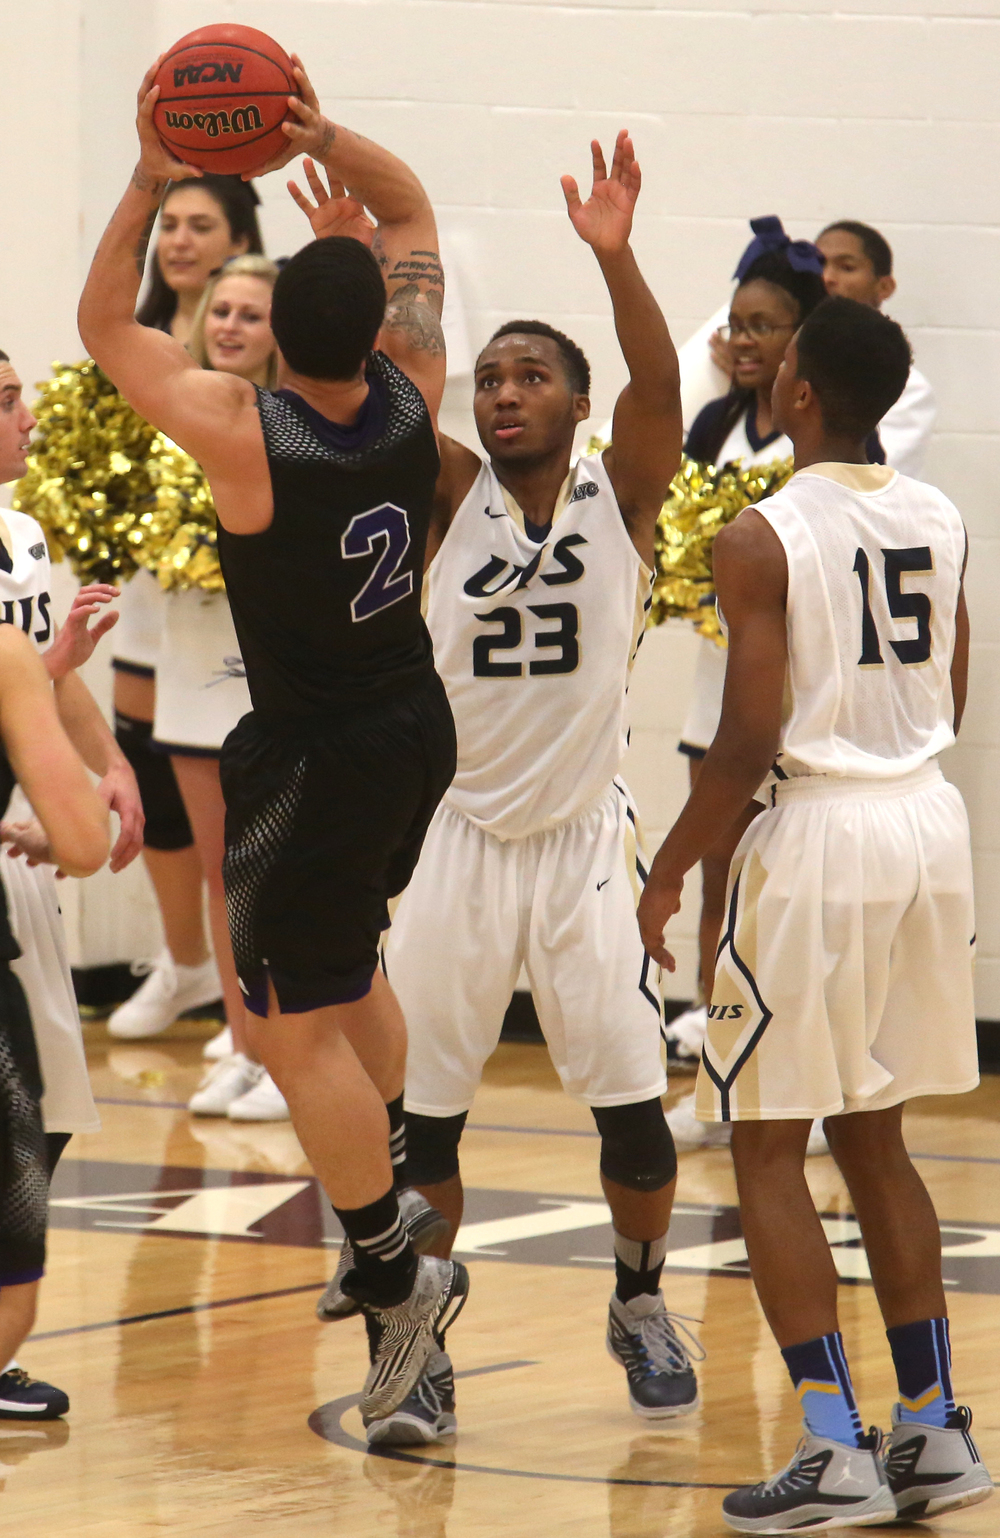 Stars player Mark Weems Jr. at center defends while Panthers player Tre Boutilier prepares to make a shot. The Kentucky Wesleyan Panthers defeated the UIS Prairie Stars 80-61 in men's basketball action at the TRAC center on the UIS campus on Sunday, Dec. 14, 2014. David Spencer/The State Journal-Register